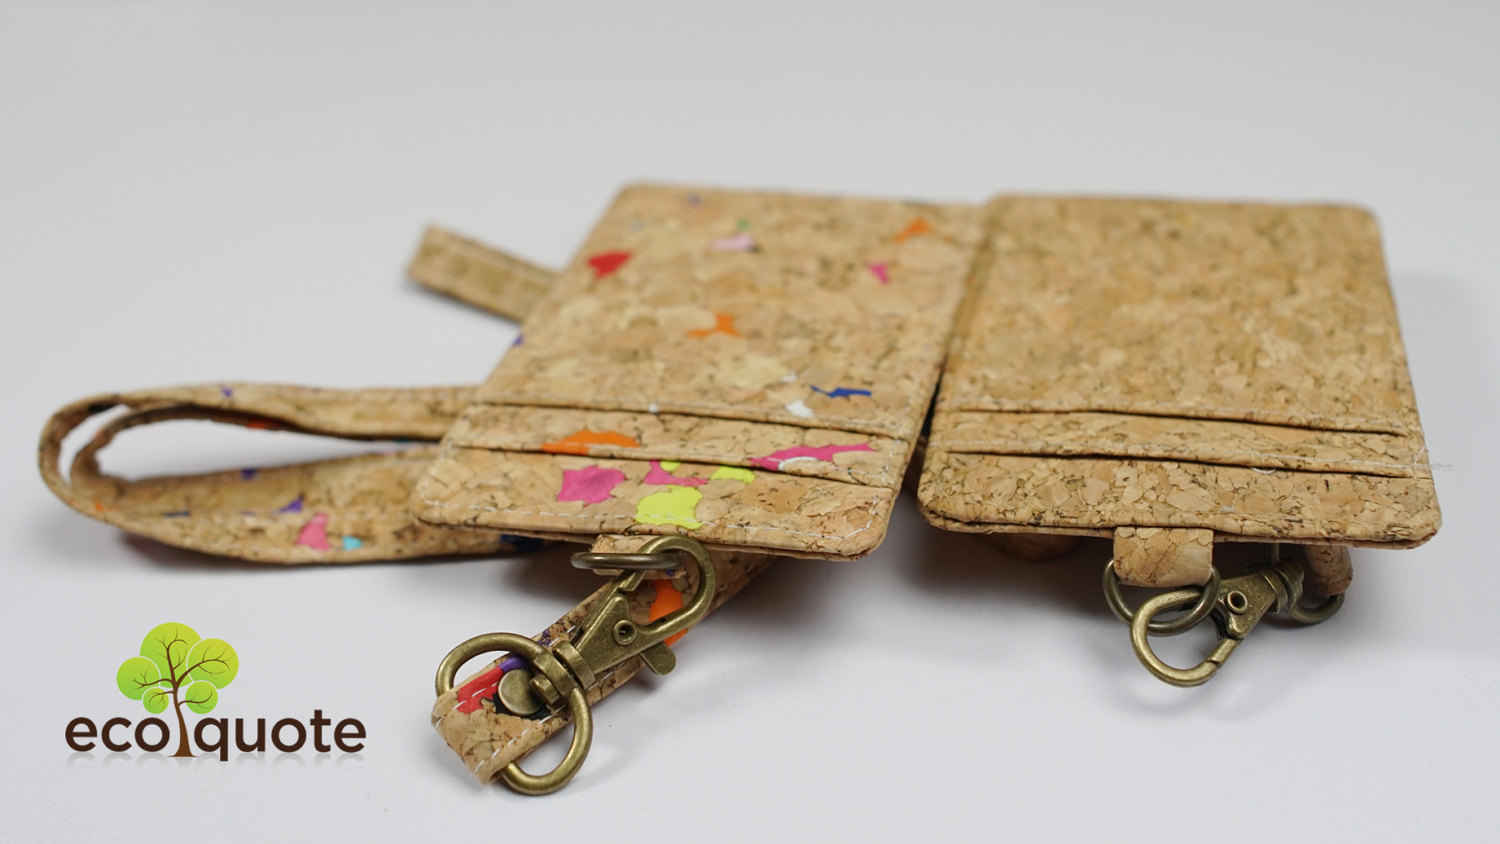 EcoQuote Lanyard with Badge Holder Handmade Cork Material Eco Friendly for Vegan